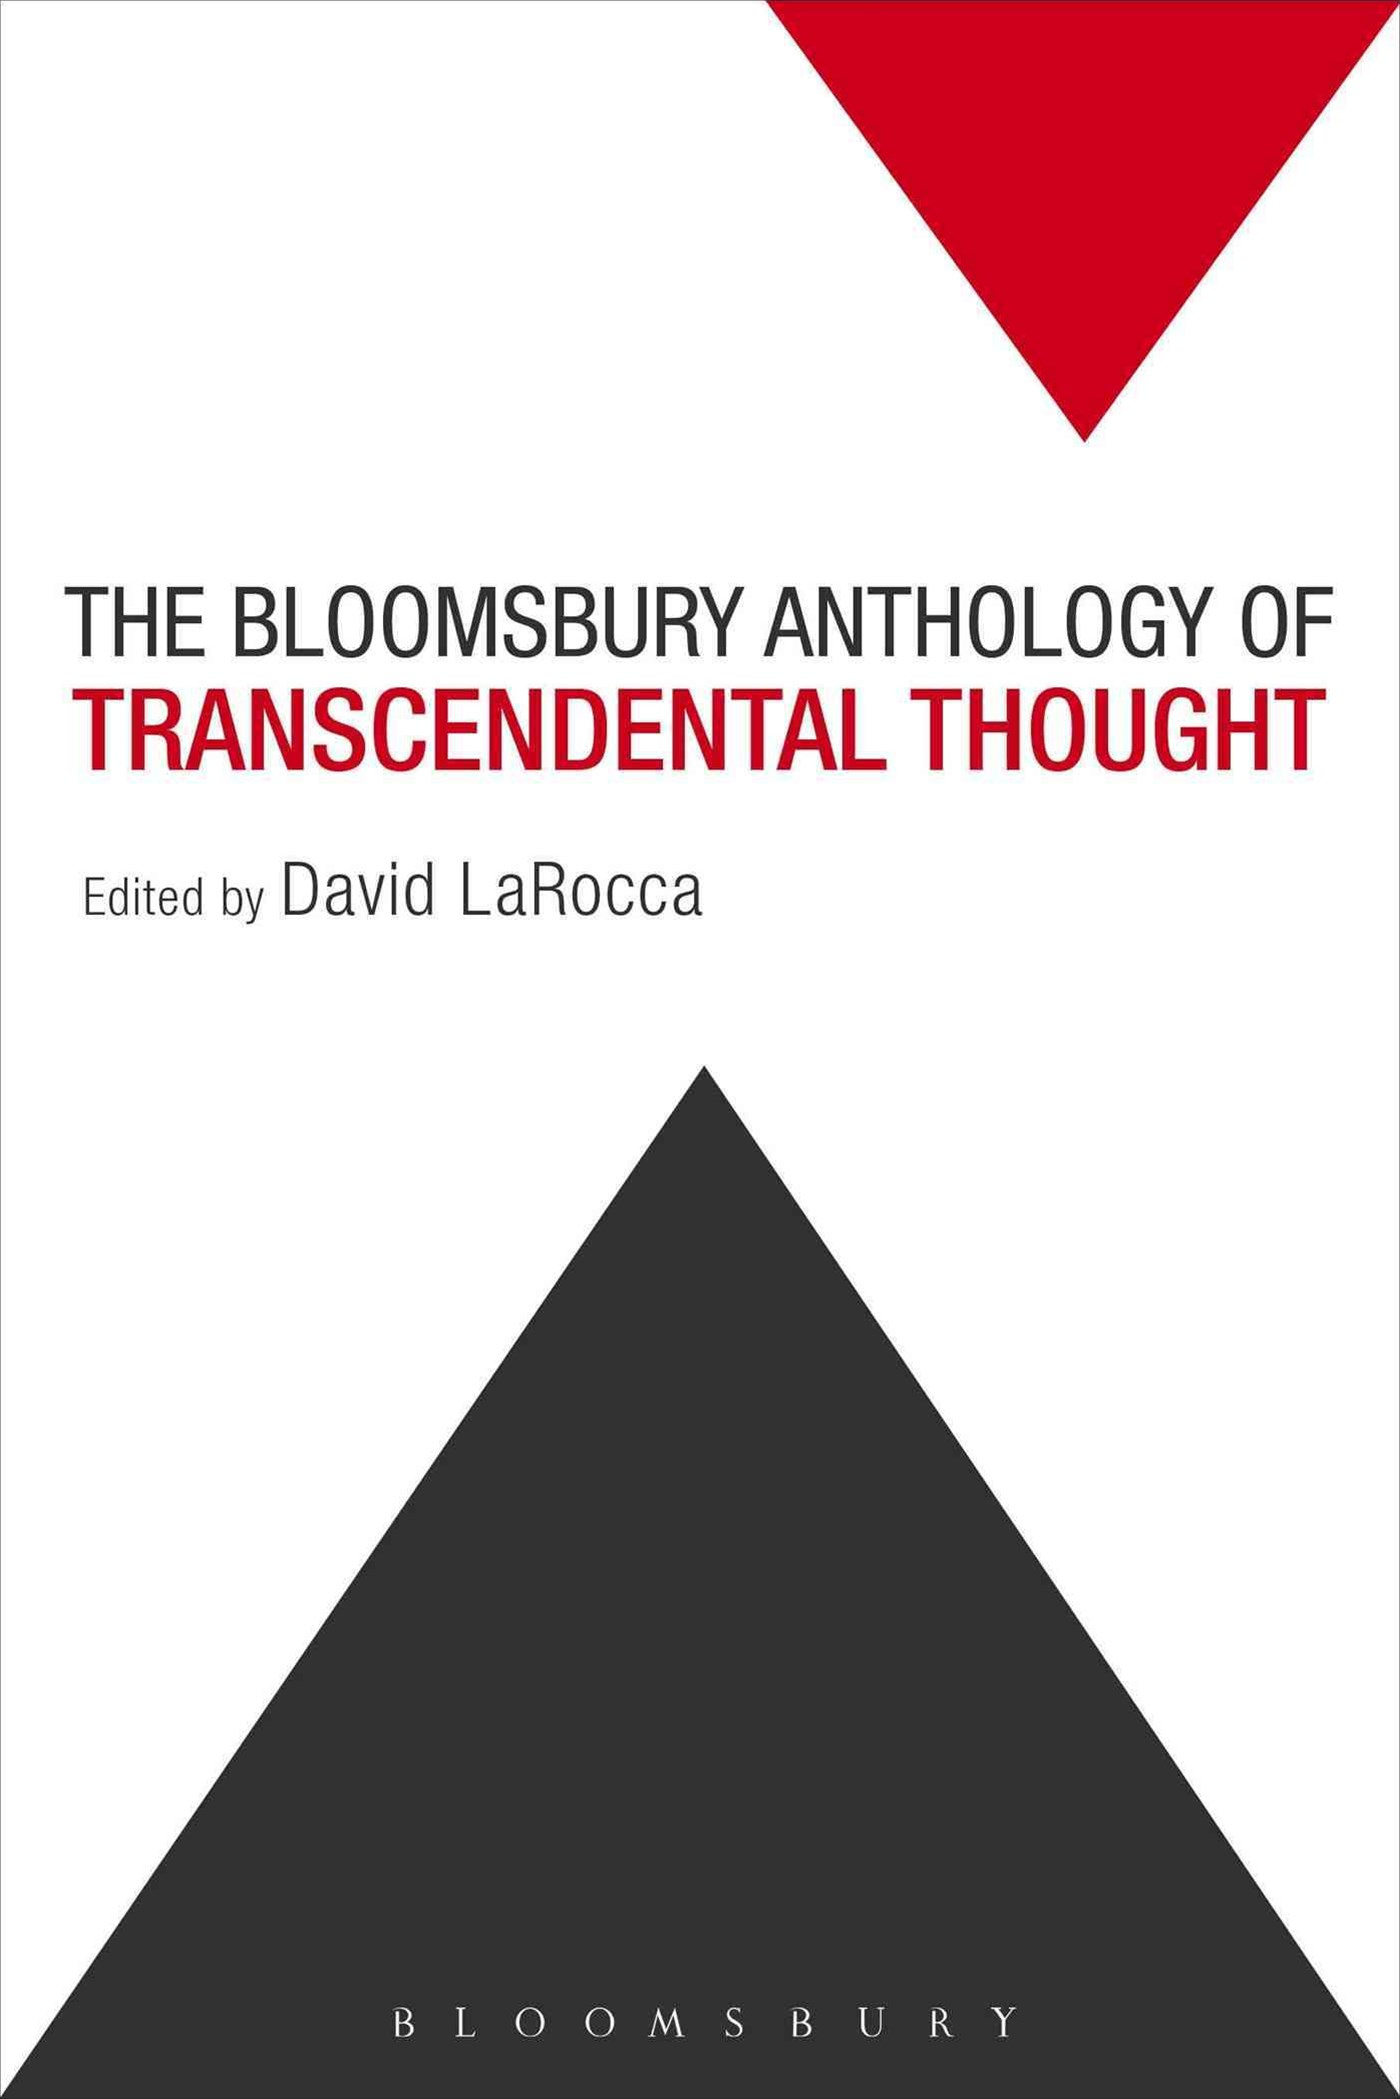 The Bloomsbury Anthology of Transcendental Thought